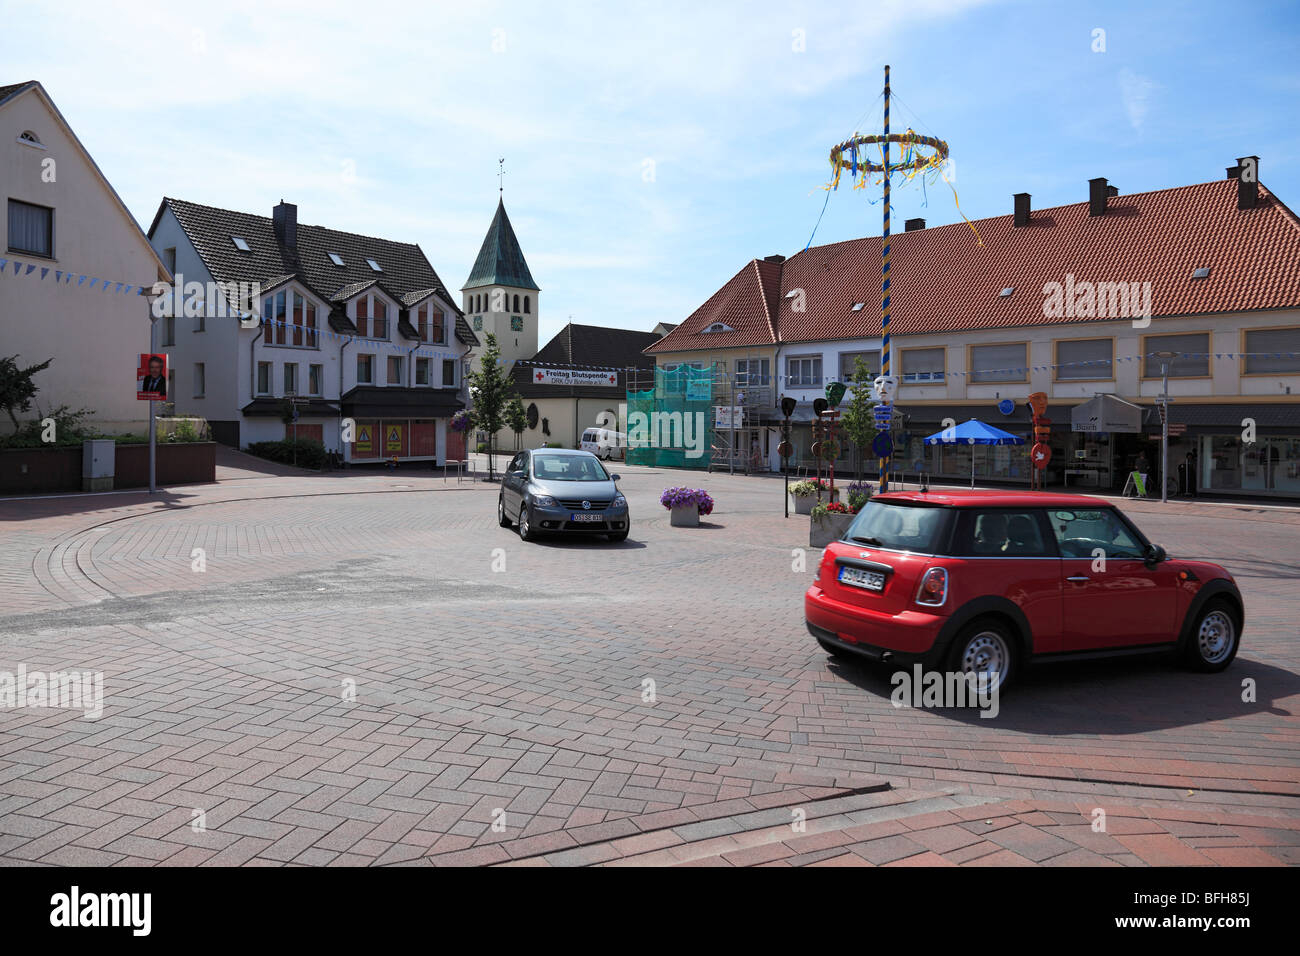 D-Bohmte, Hunte, Midland Canal, Duemmer, Osnabrueck Country, Lower Saxony, traffic, traffic project, attempt of - Stock Image